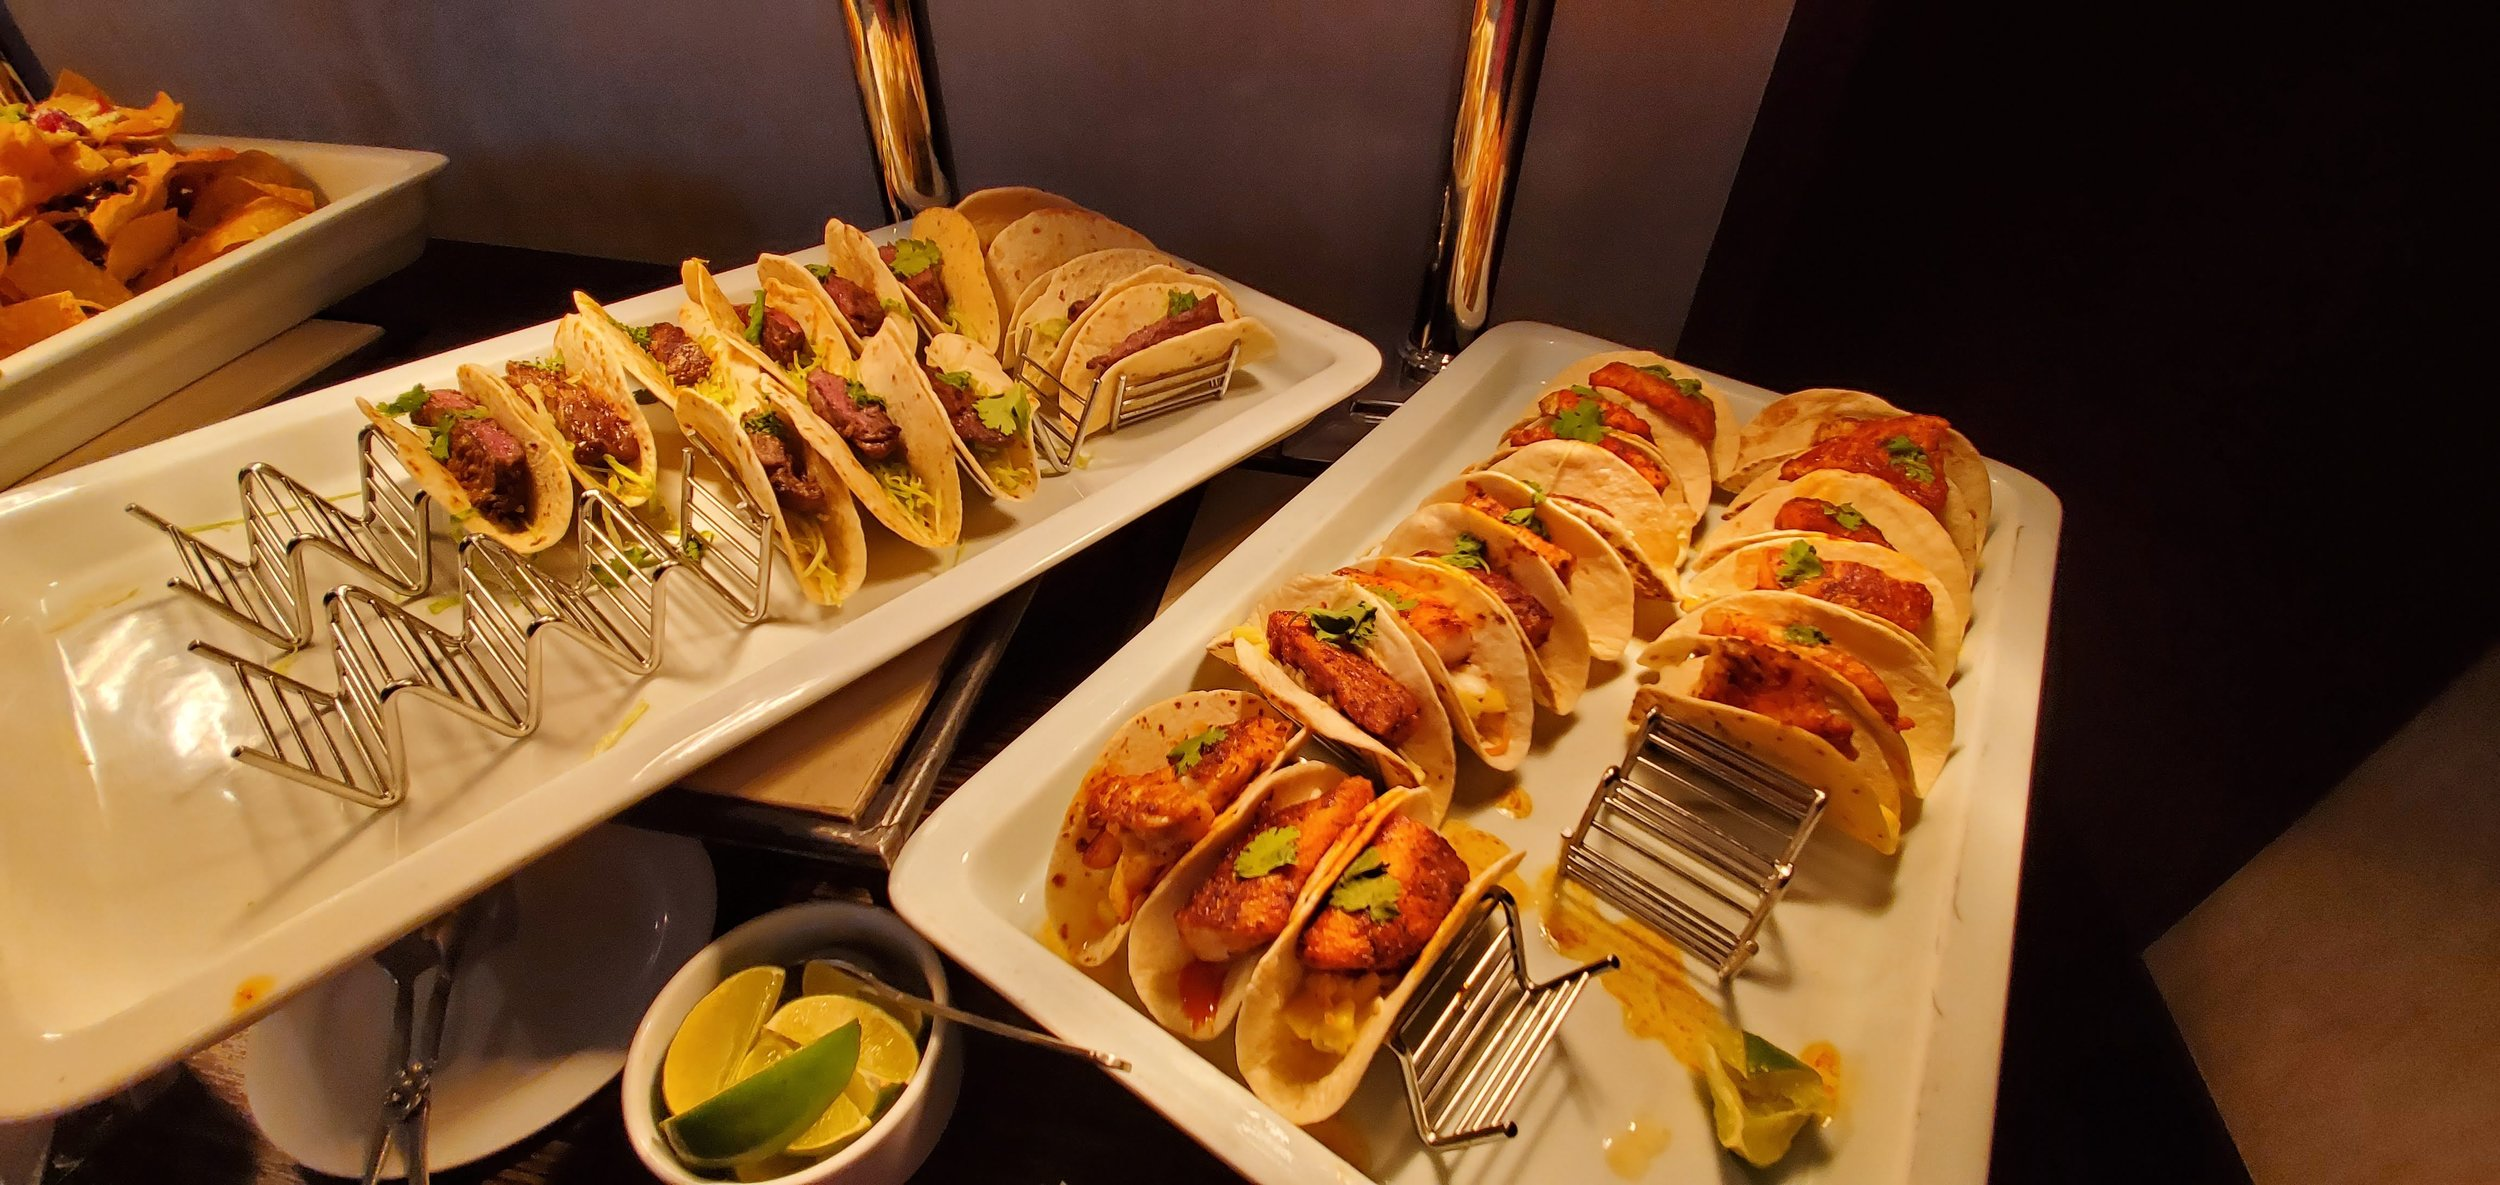 Steak tacos, fish tacos, calimari, wings…. too much to capture in one picture